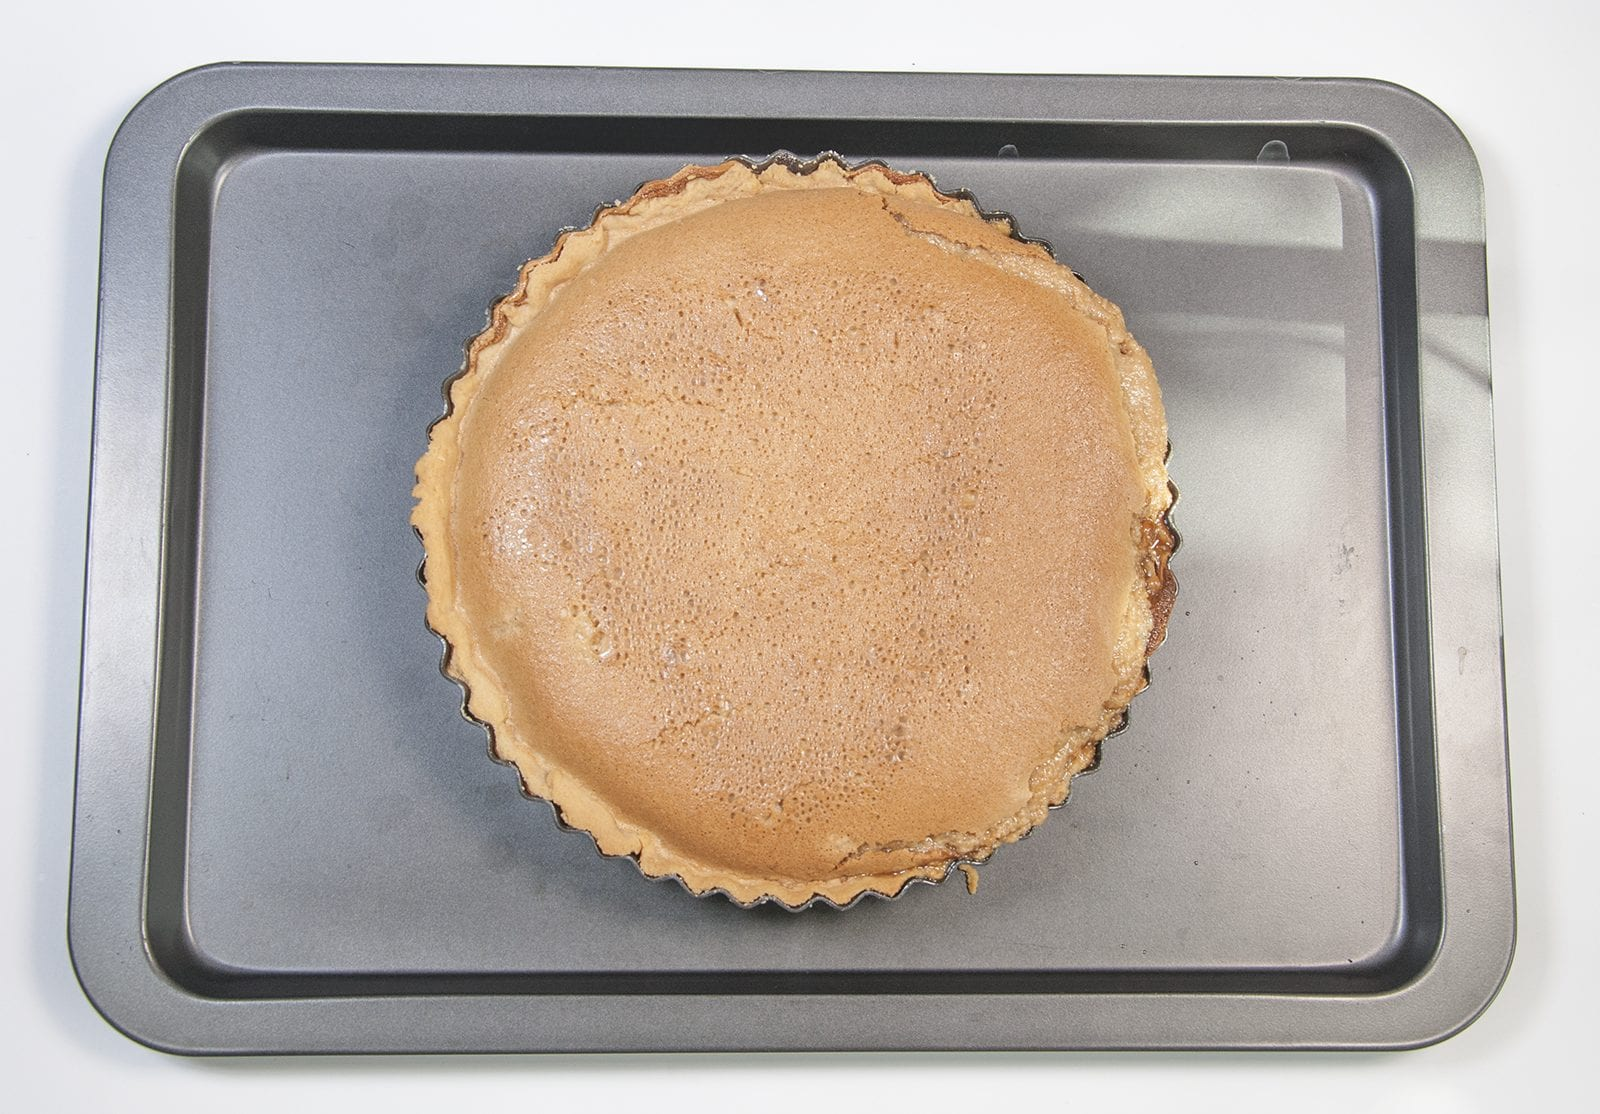 School Pudding Gypsy Tart. Bake for around 30 minutes | https://theyumyumclub.com/2019/05/23/school-pudding-gypsy-tart/